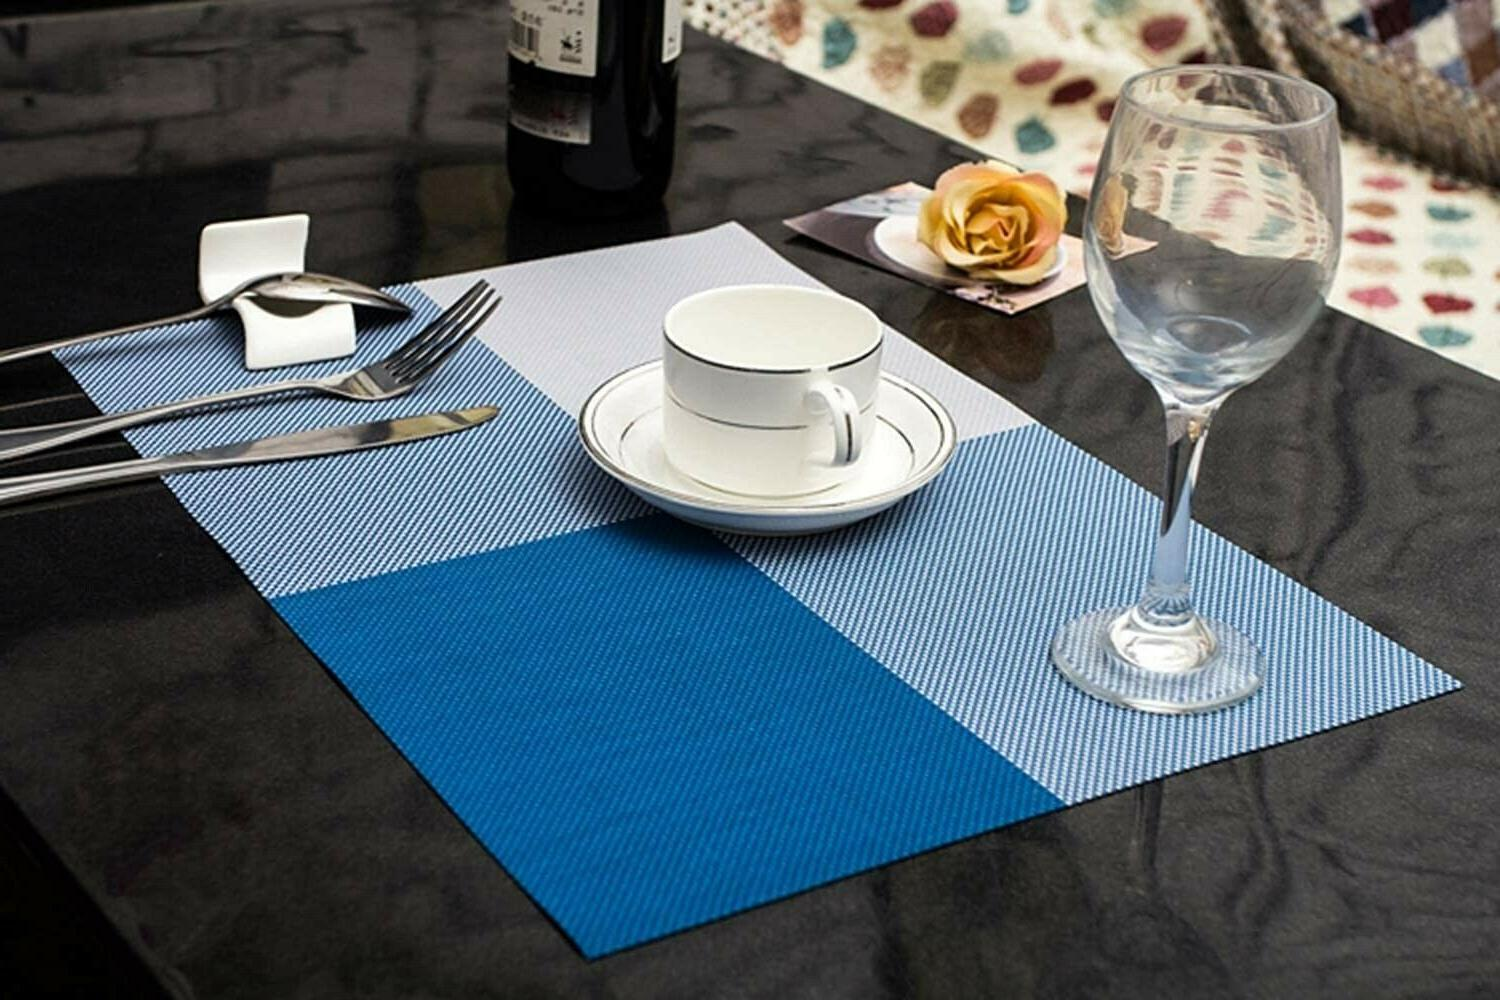 Set of 4 Blue PVC Slip Table Place Mats 12x18 Inches